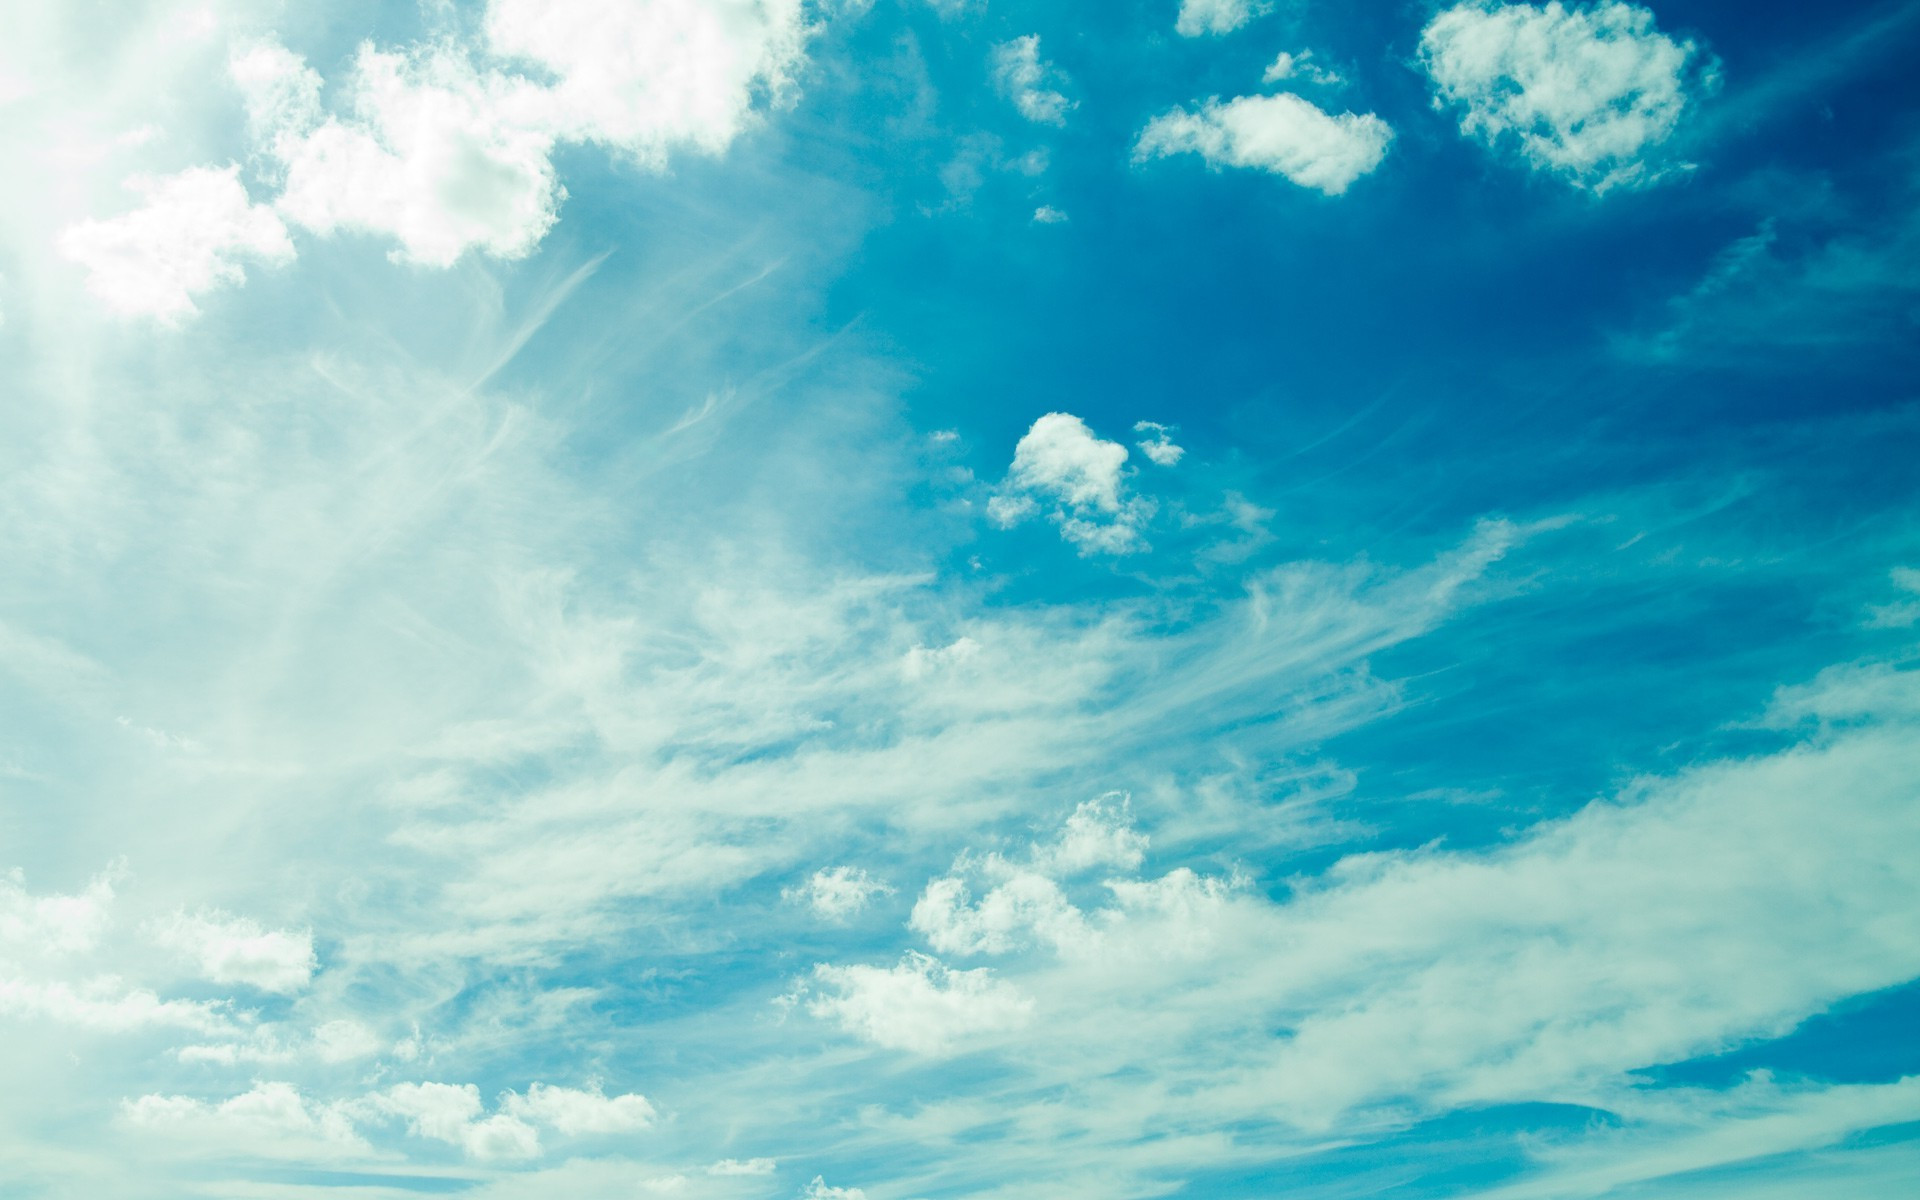 Blue sky and clouds wallpaper 6013 1920x1200